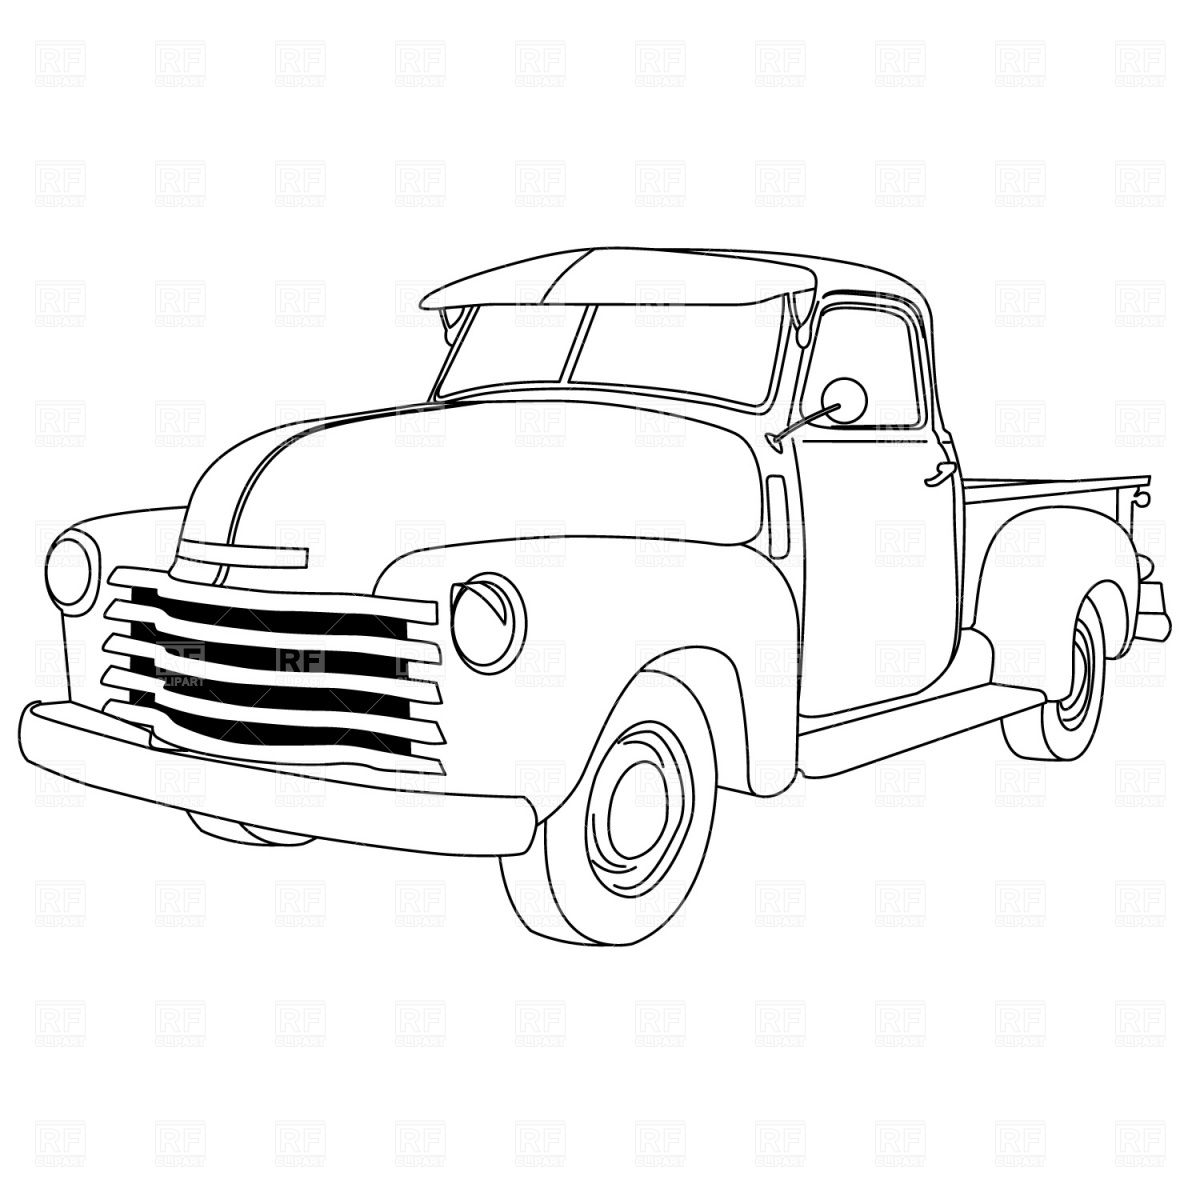 Download Royalty Free Old American Pick Up Truck Vector Image 1047